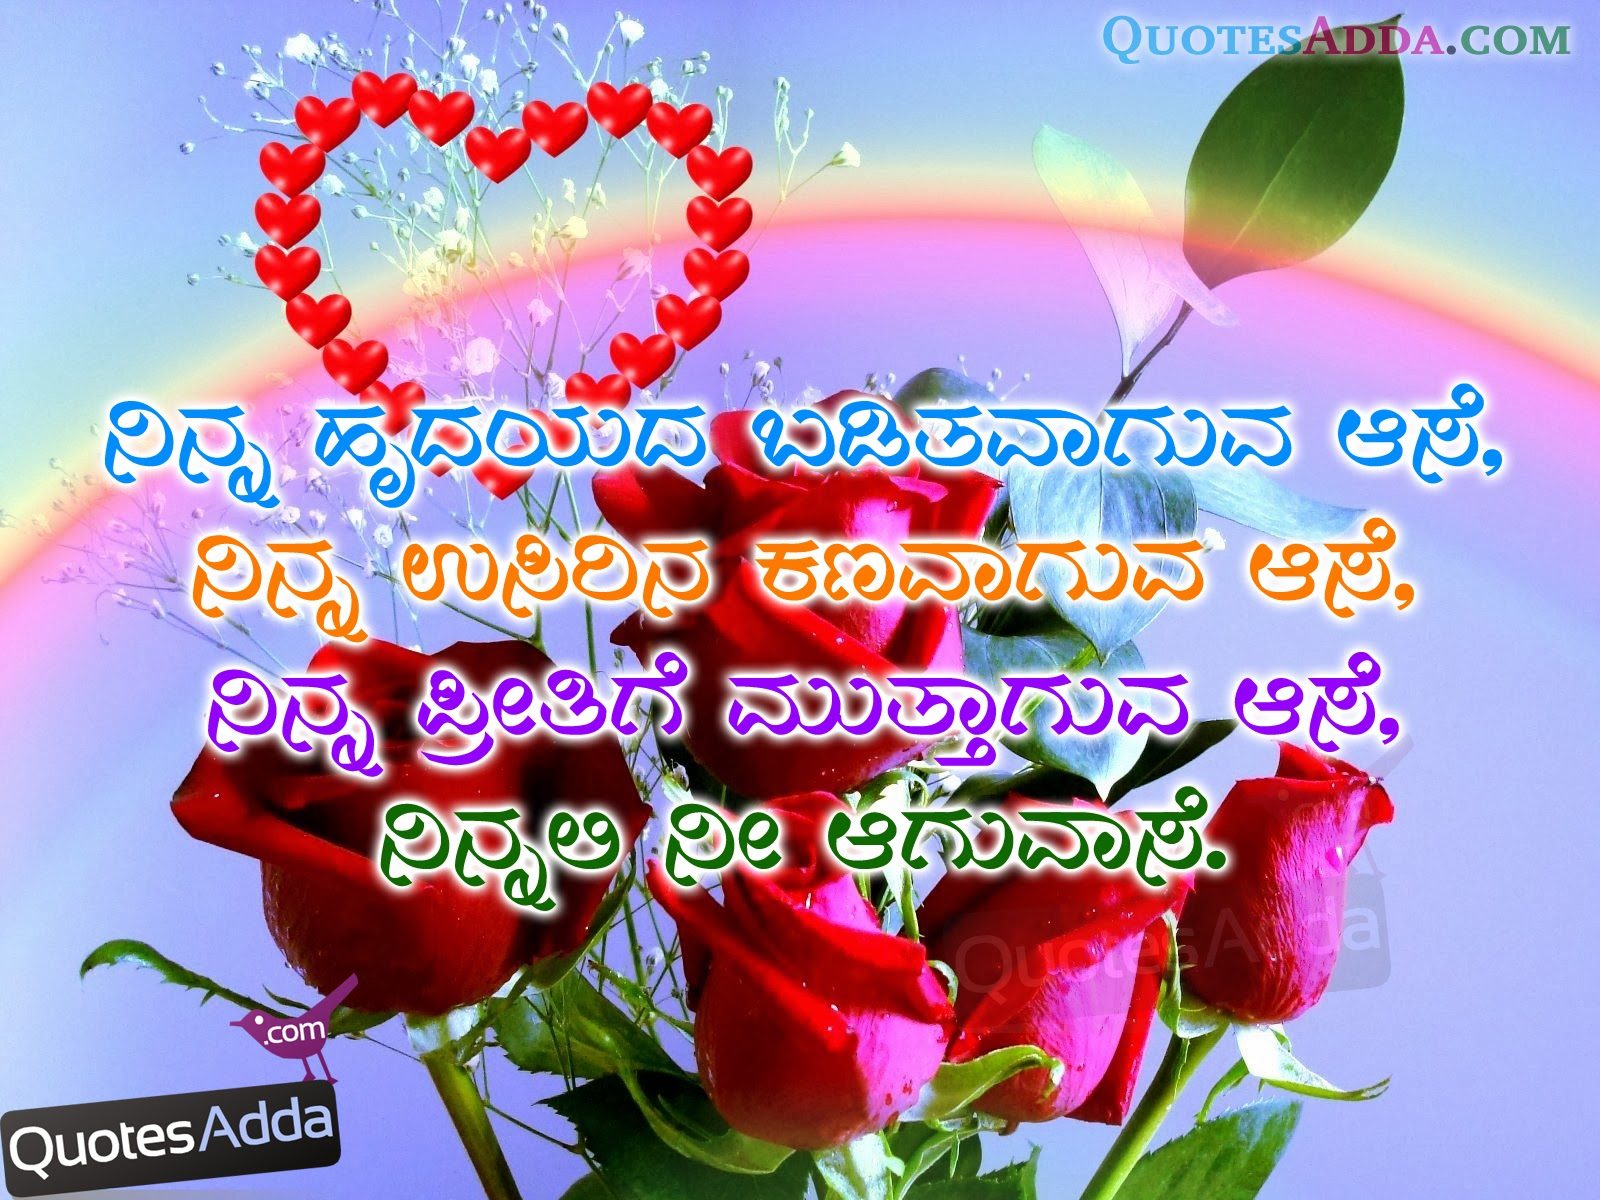 Kannada Love Quotes 2 Kannada Love Images QuotesAdda ...